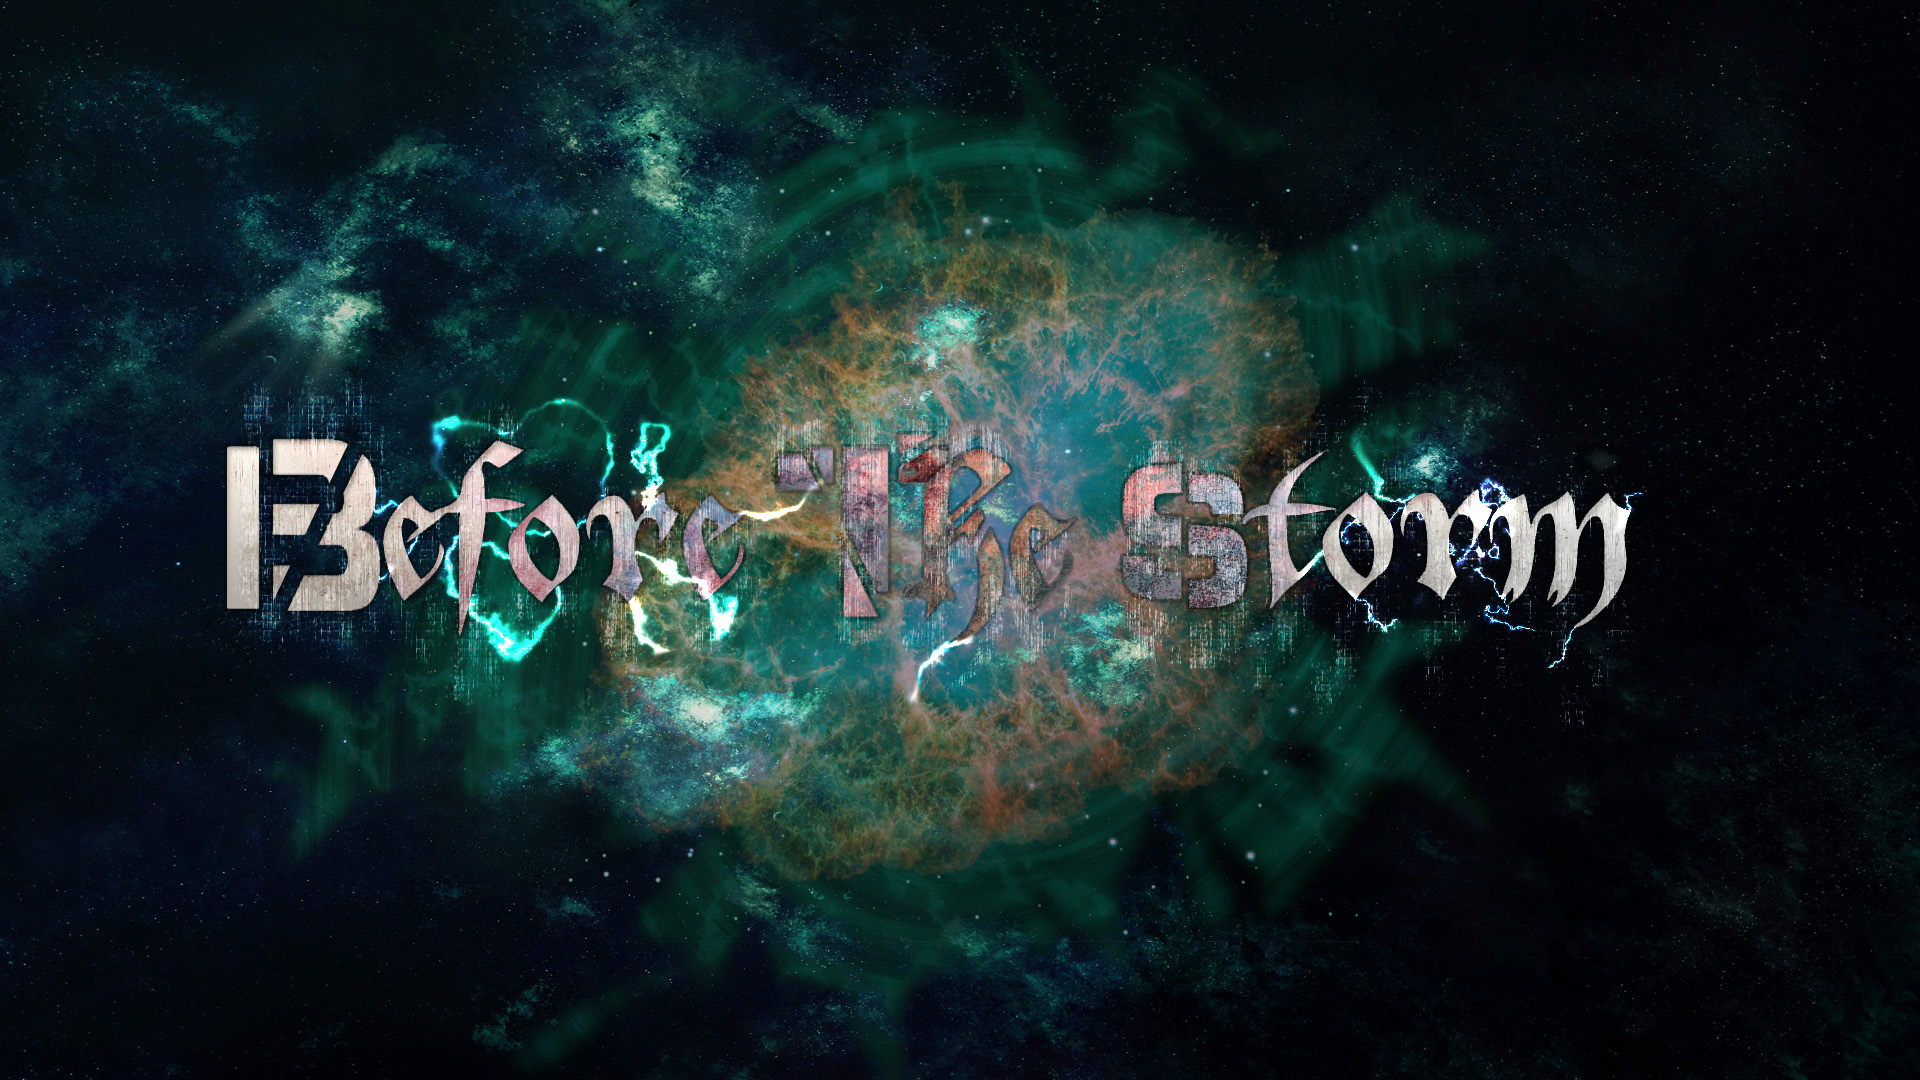 BTS logo Wallpaper w space 04 by shuped on DeviantArt